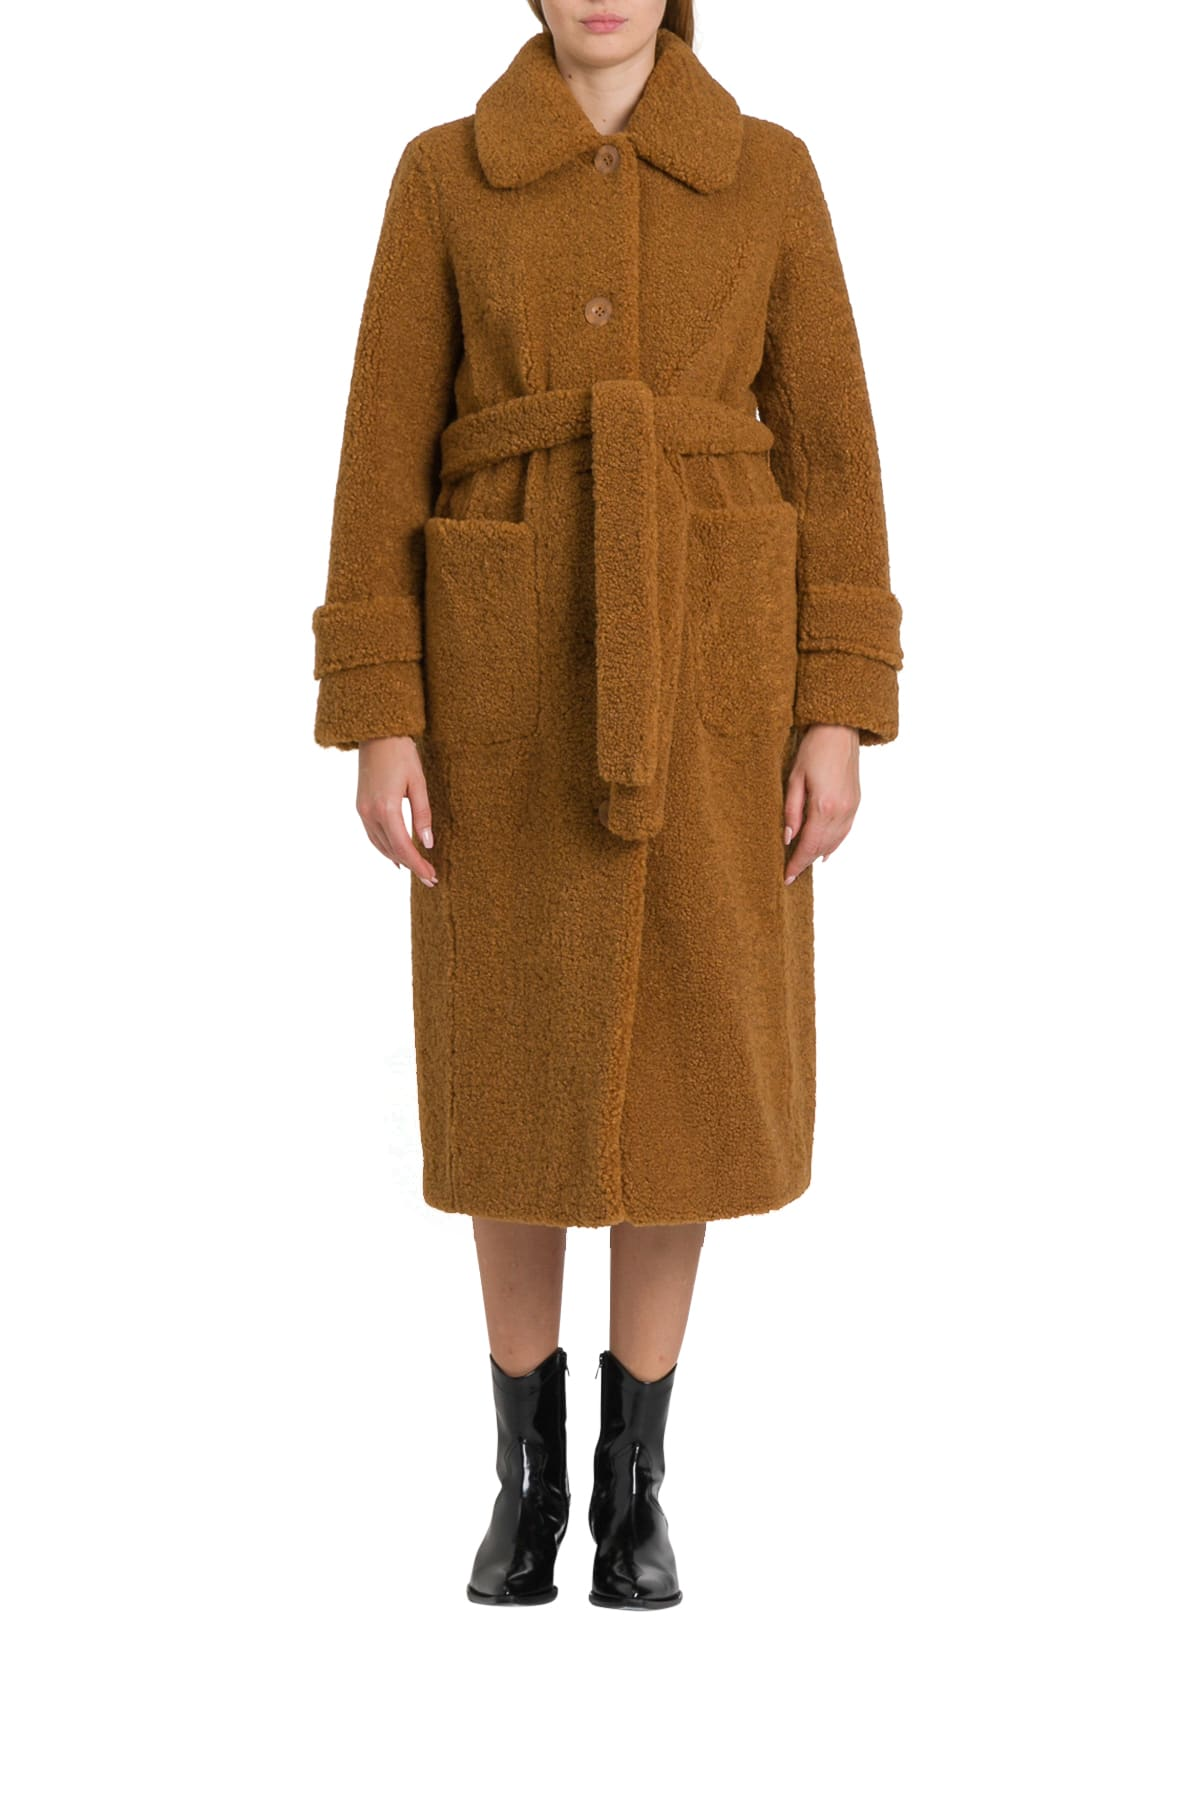 STAND STUDIO Lottie Teddy Coat